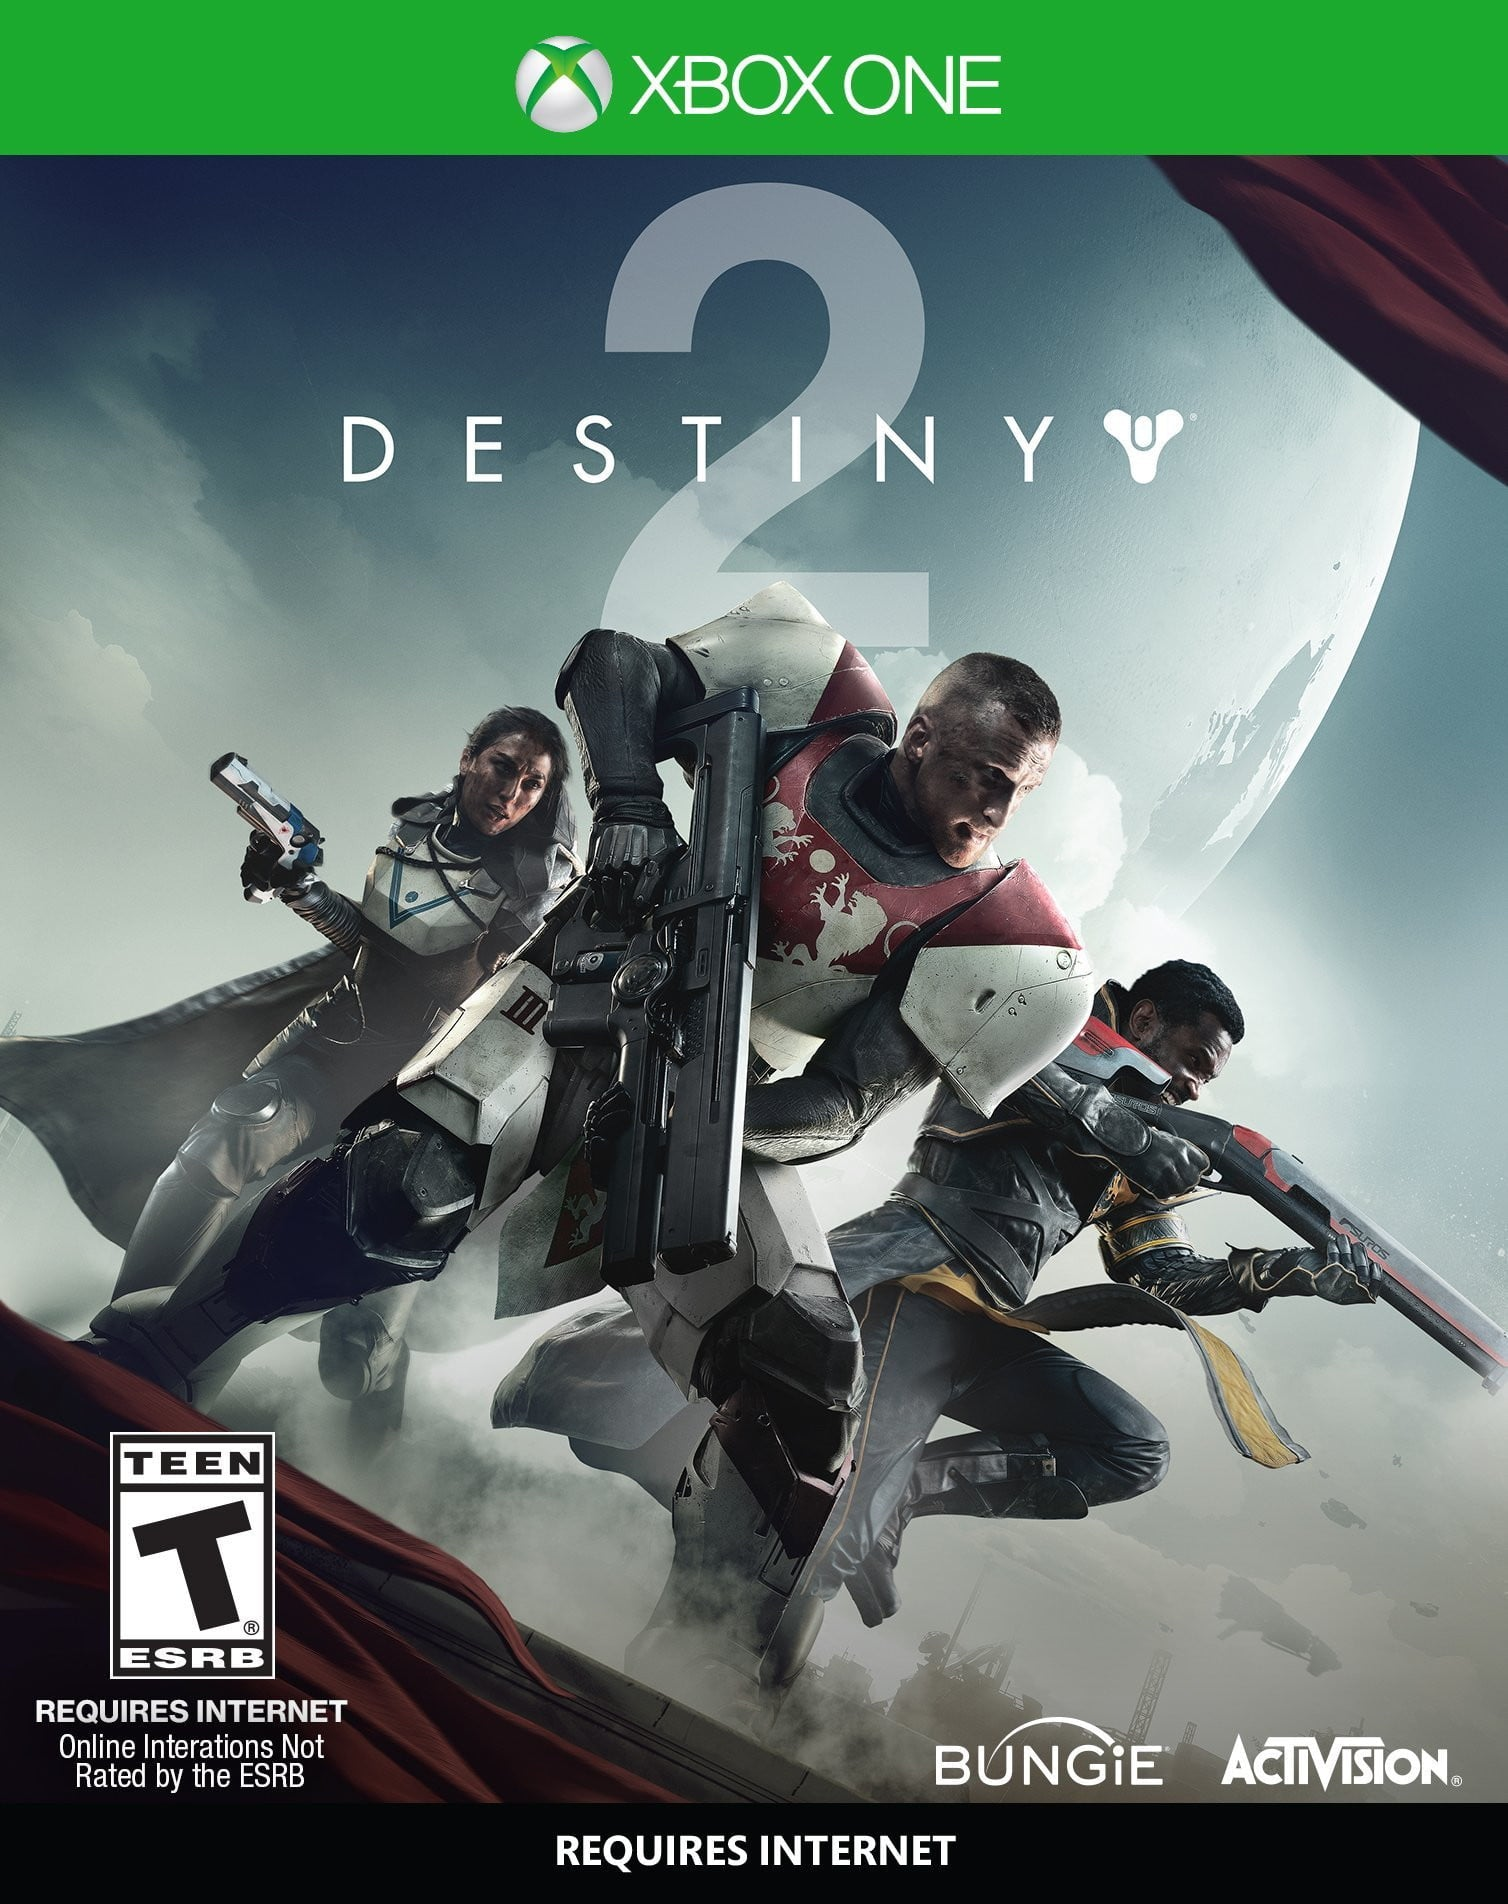 Buy Destiny 2 (XBOX ONE) XBOX ONE in Egypt - Shamy Stores